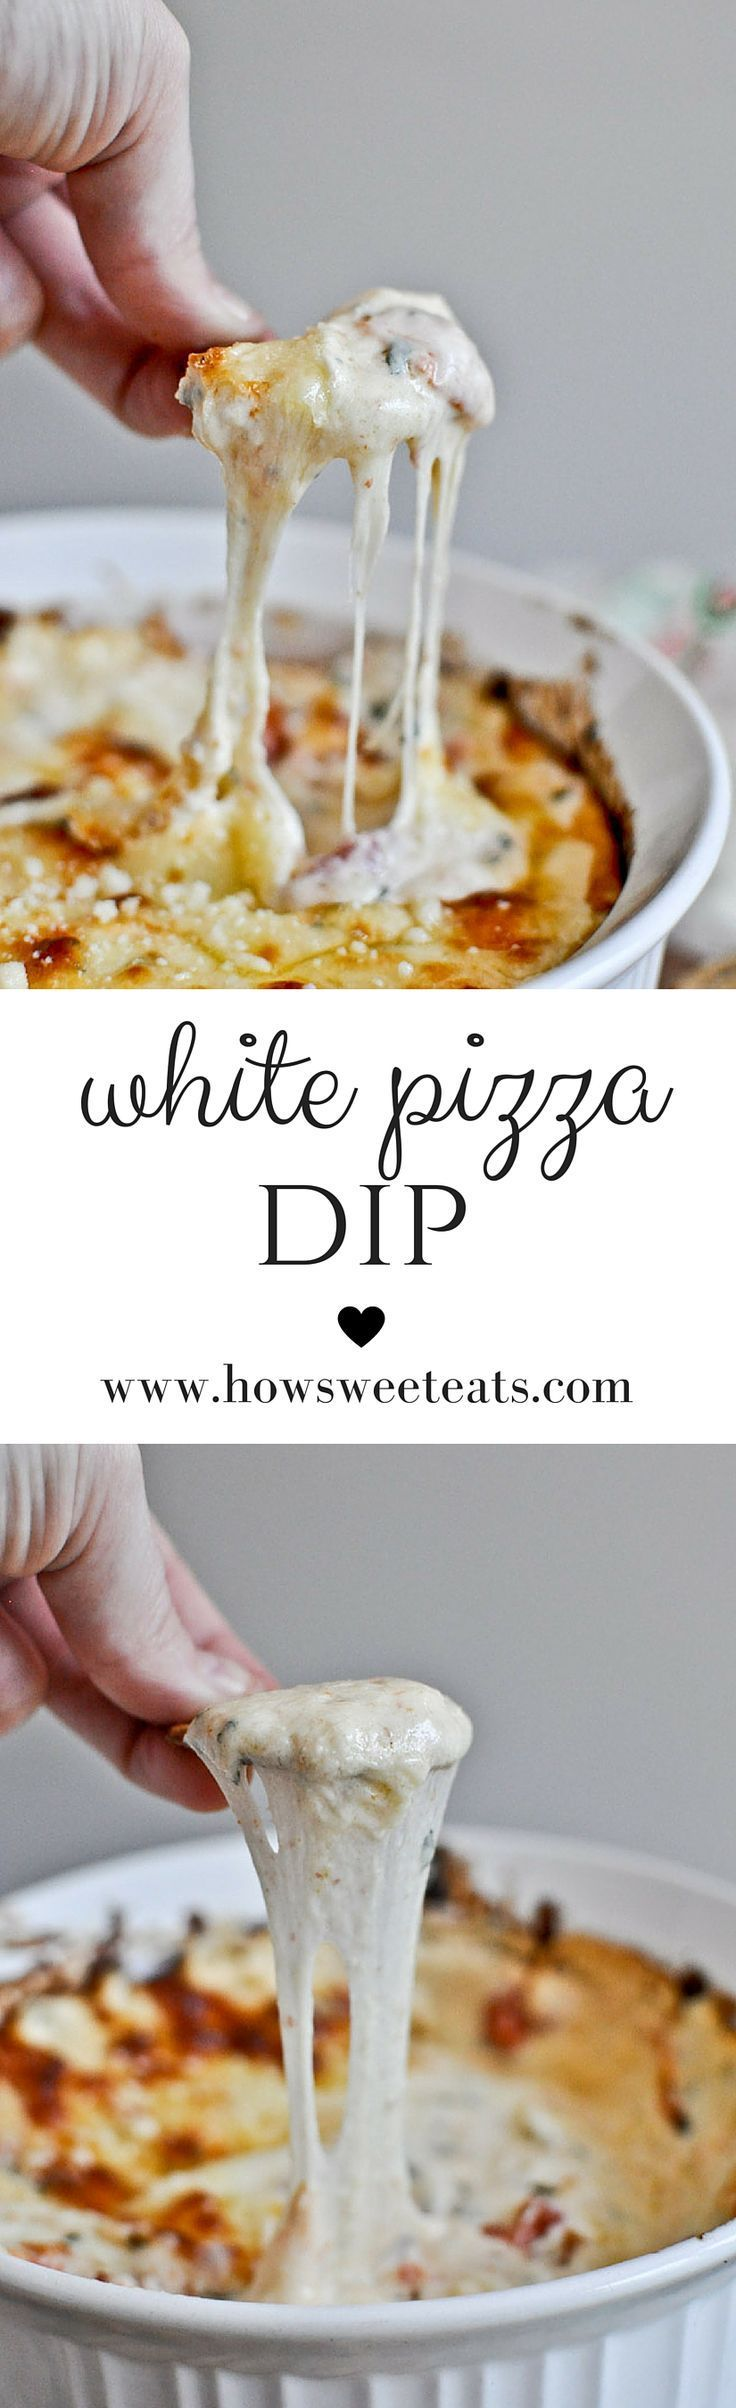 White Pizza Dip by /howsweeteats/ I http://howsweeteats.com